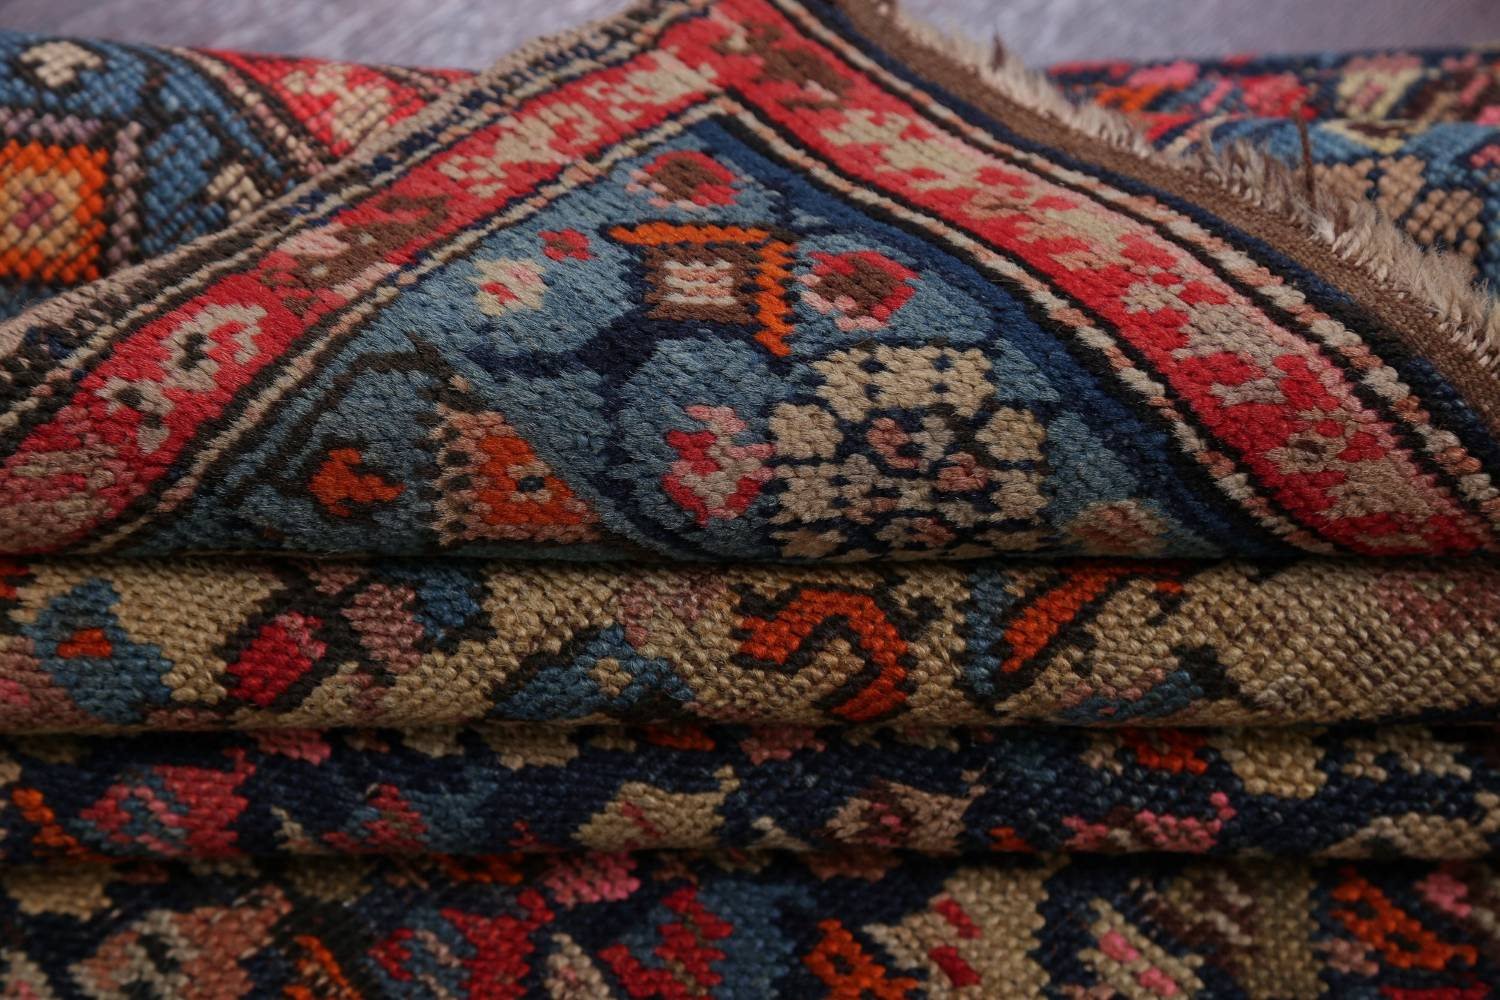 Pre-1900 Karabakh Bote Russian Oriental Hand-Knotted 5x16 Runner Rug image 18